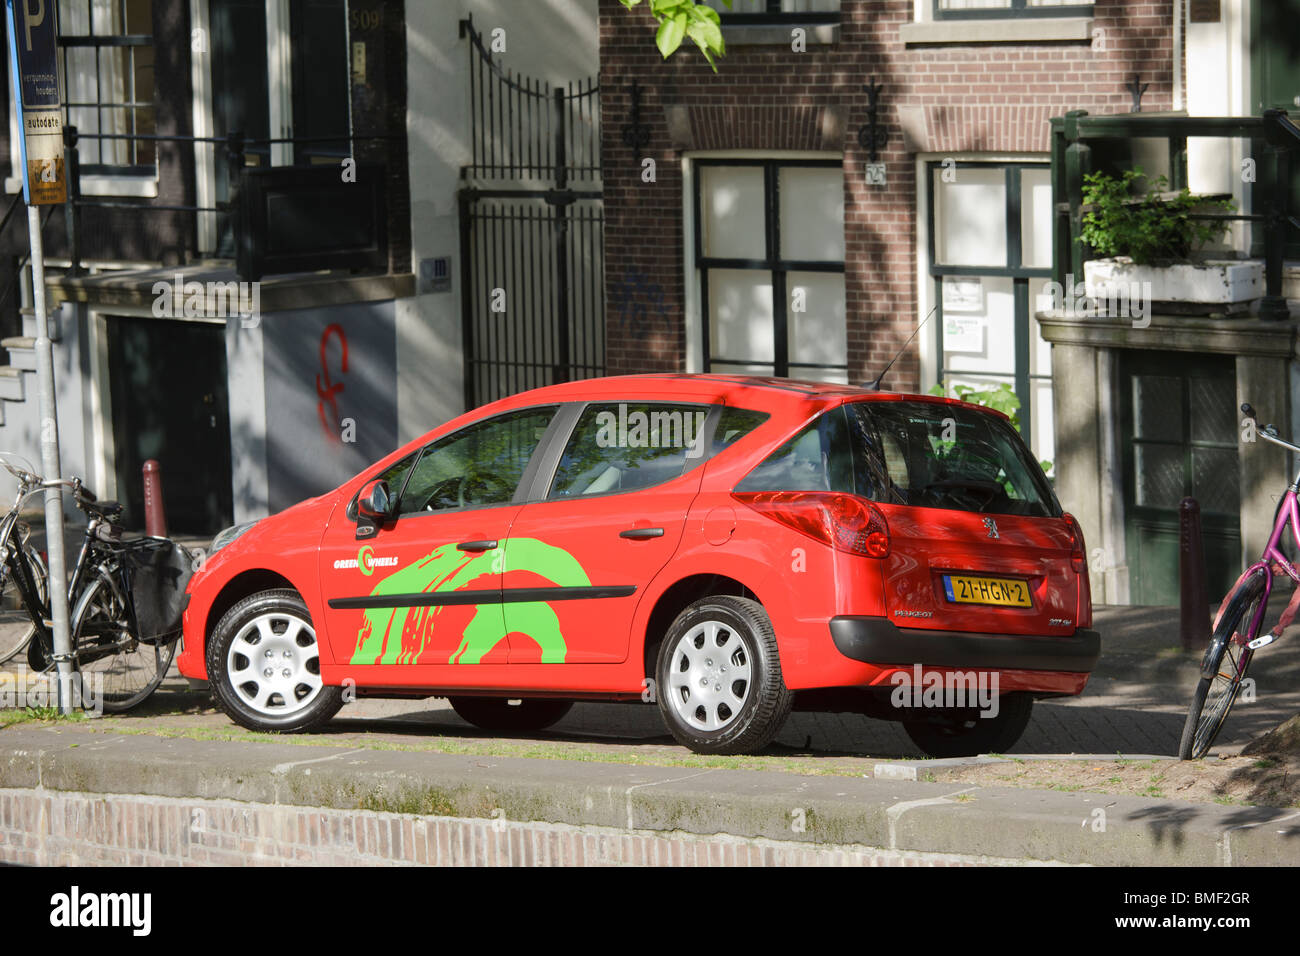 A Green Wheels car for car sharing, dating, short term rental, on a canal in Amsterdam. Peugeot 207. - Stock Image